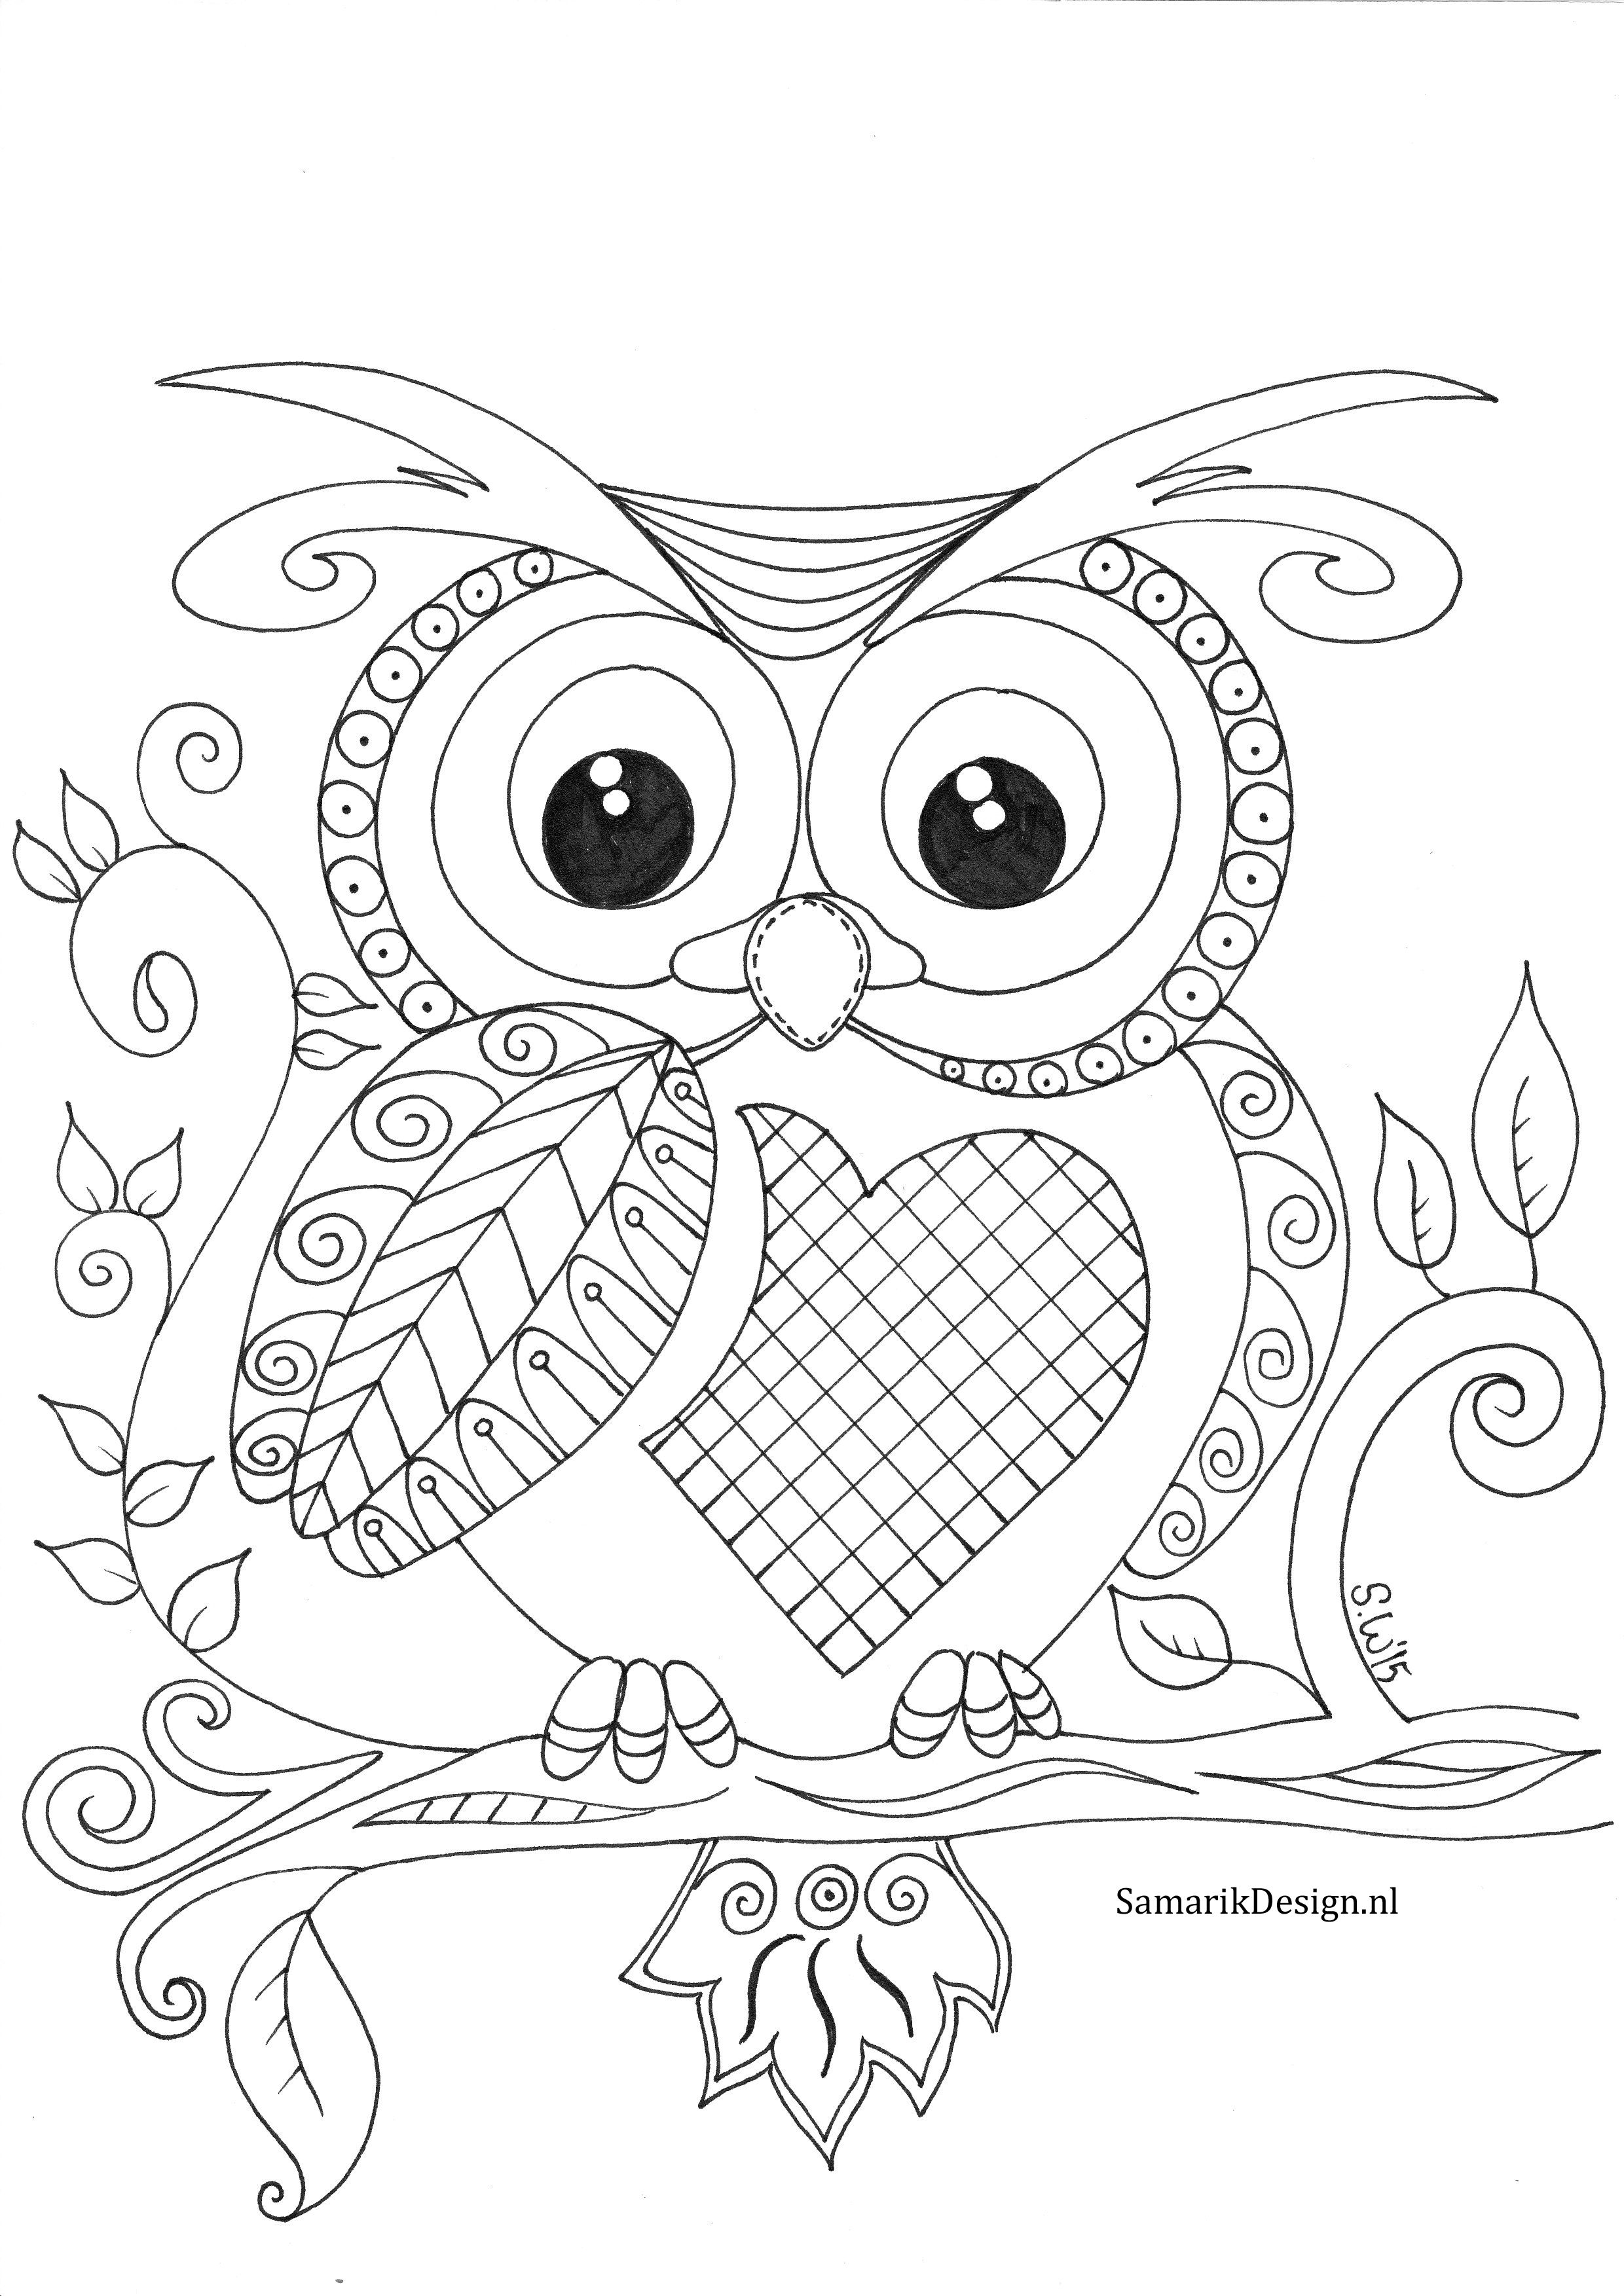 Colouring for adults | Patterns Owls, Frogs and Snails | Pinterest ...